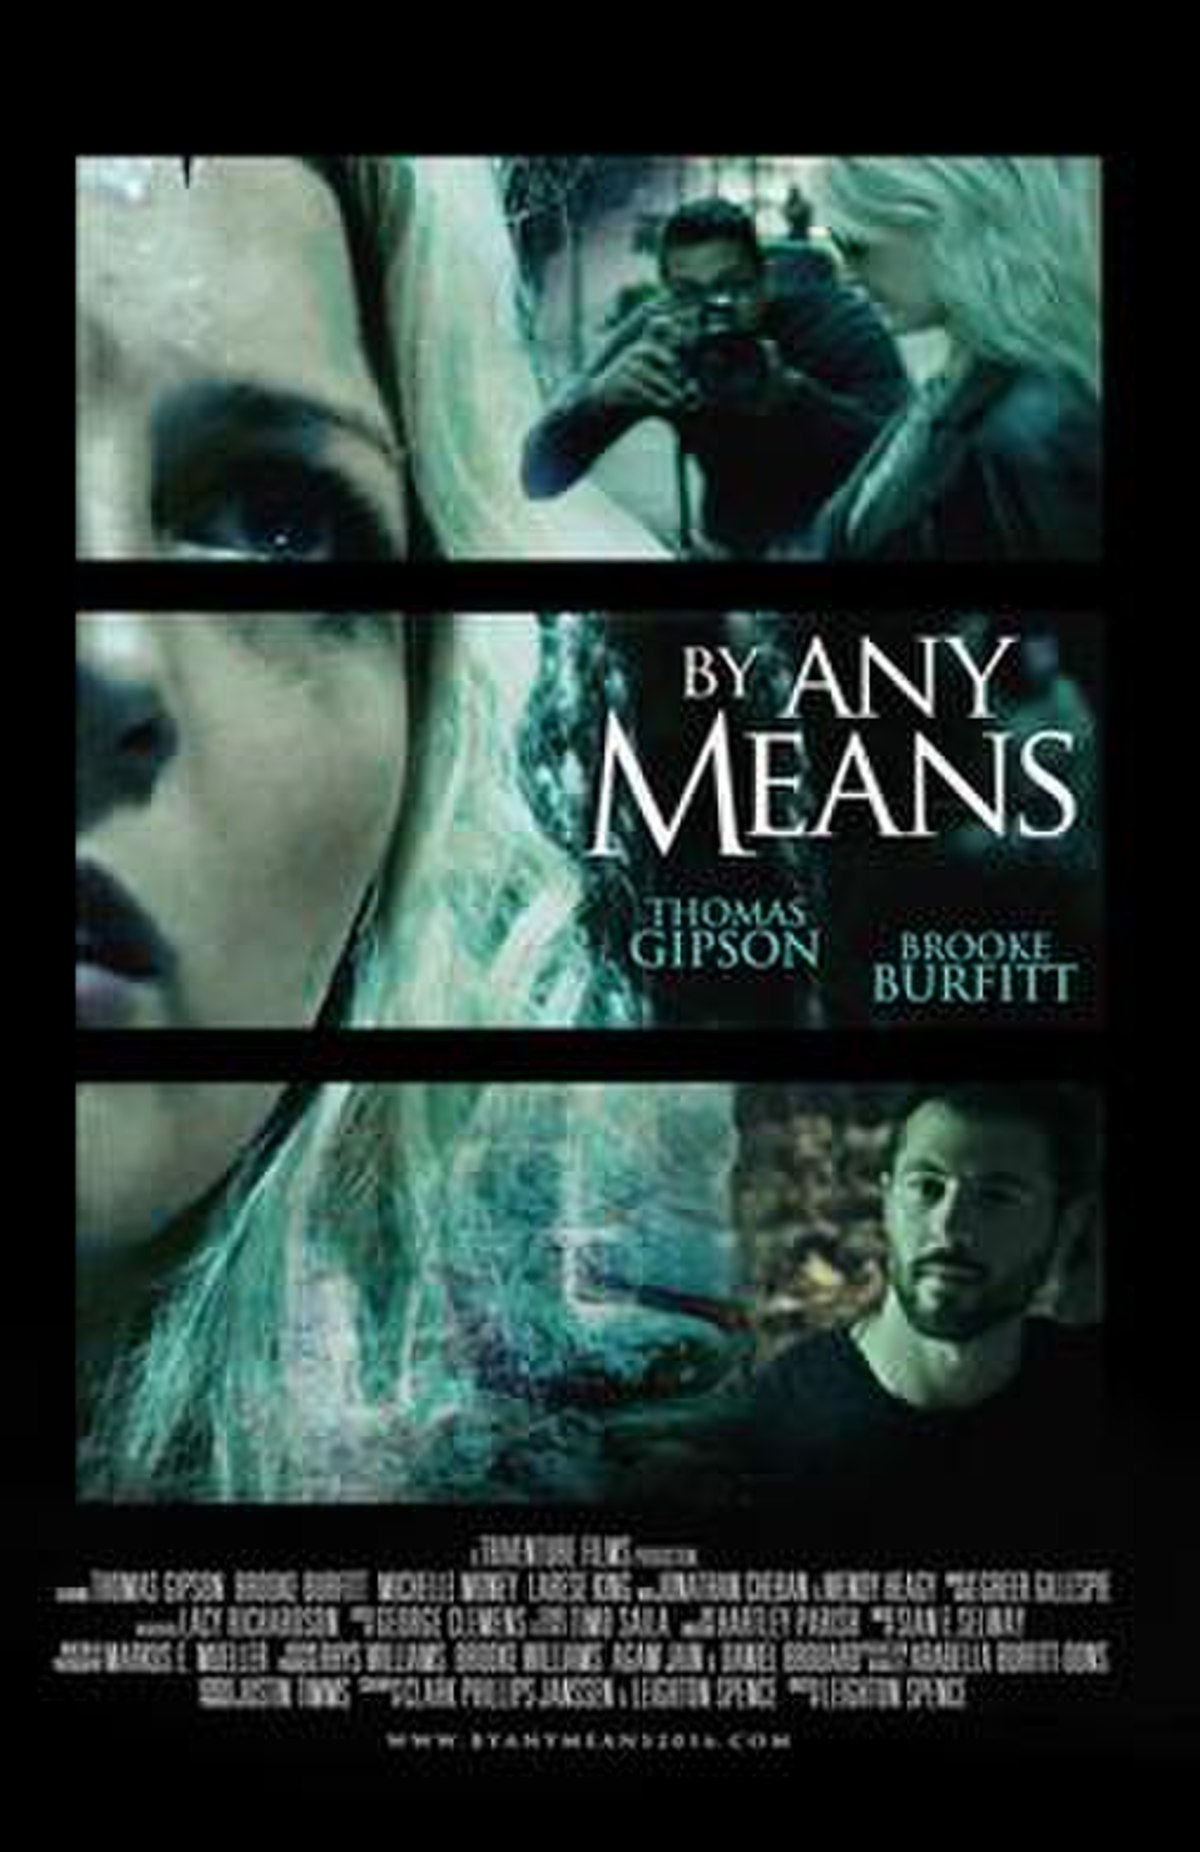 by any means film wikipedia